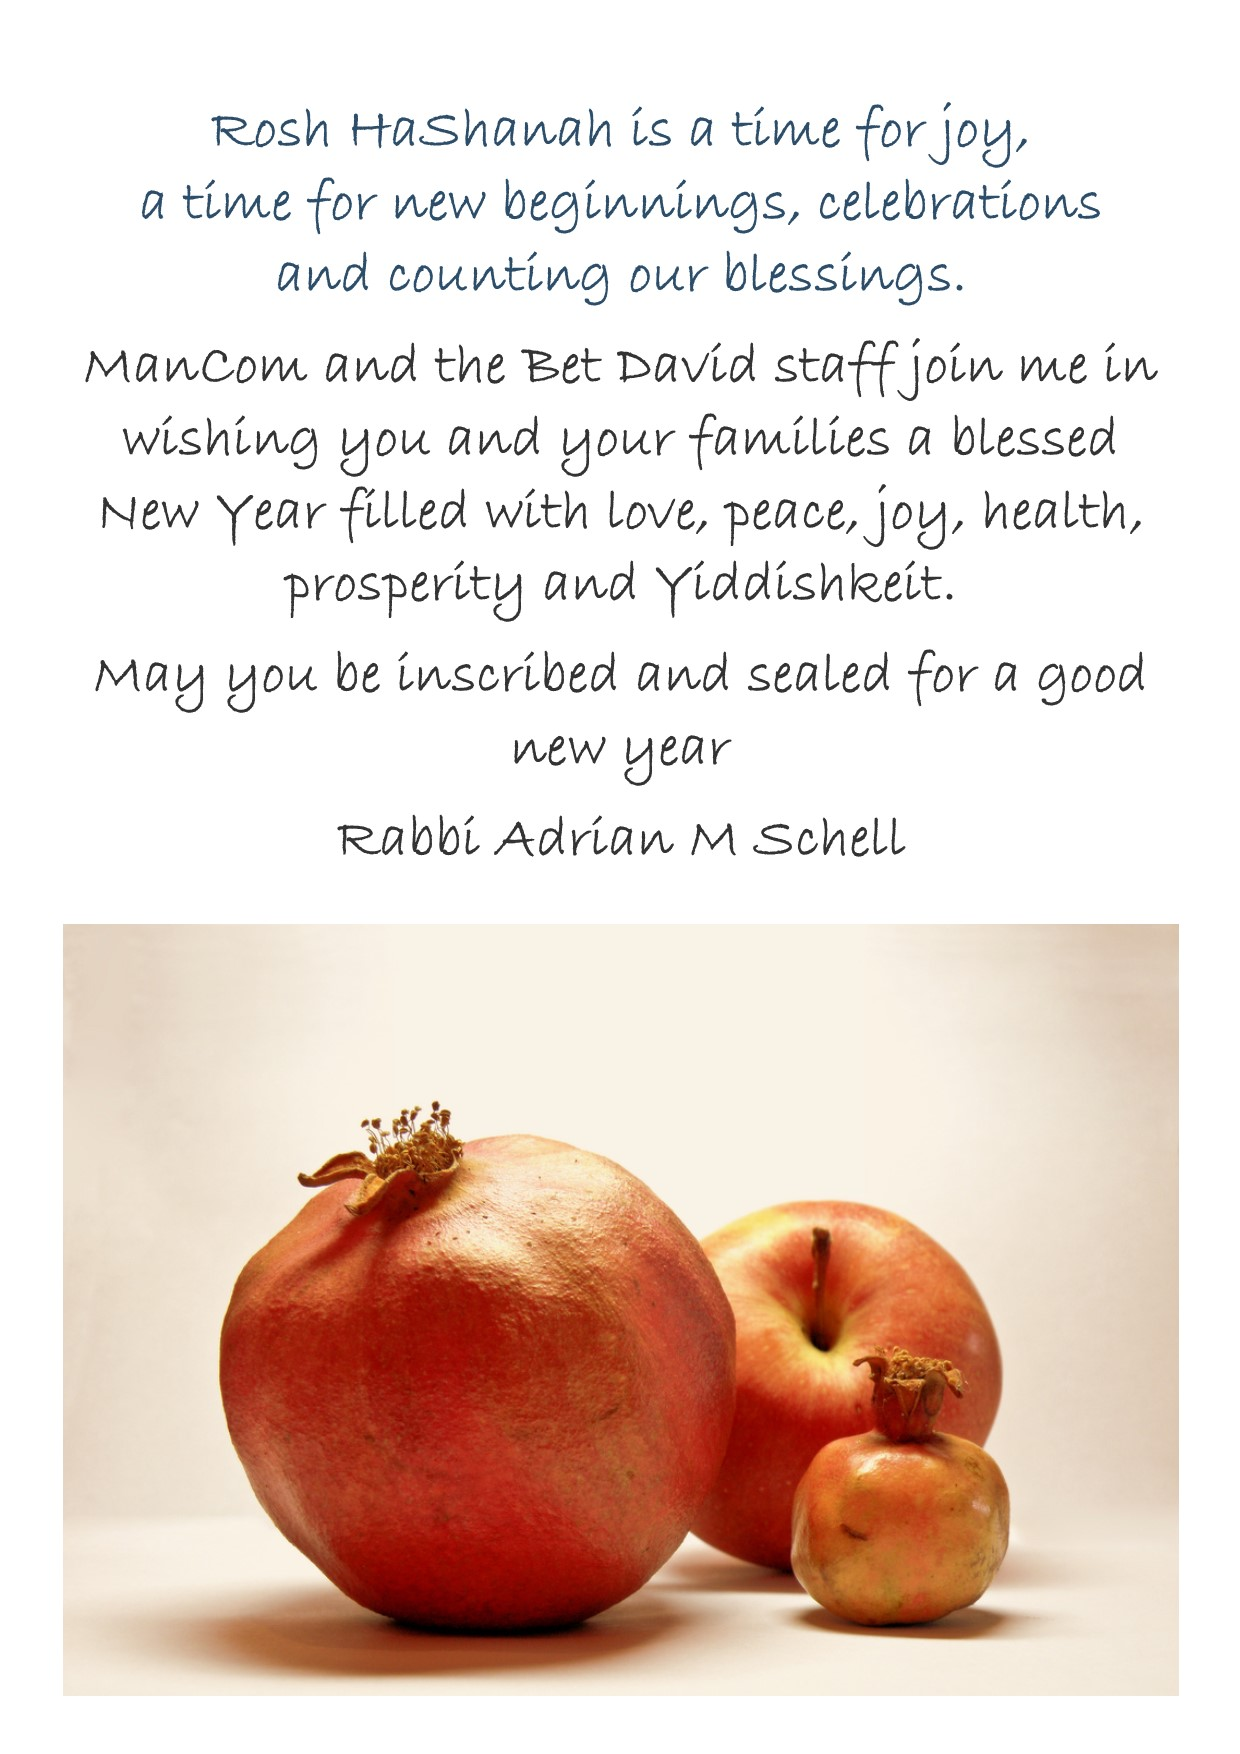 Awesome moments between past present and future greetings for the mishkan hanefesh rosh hashanah machzor for the days of awe page 300 m4hsunfo